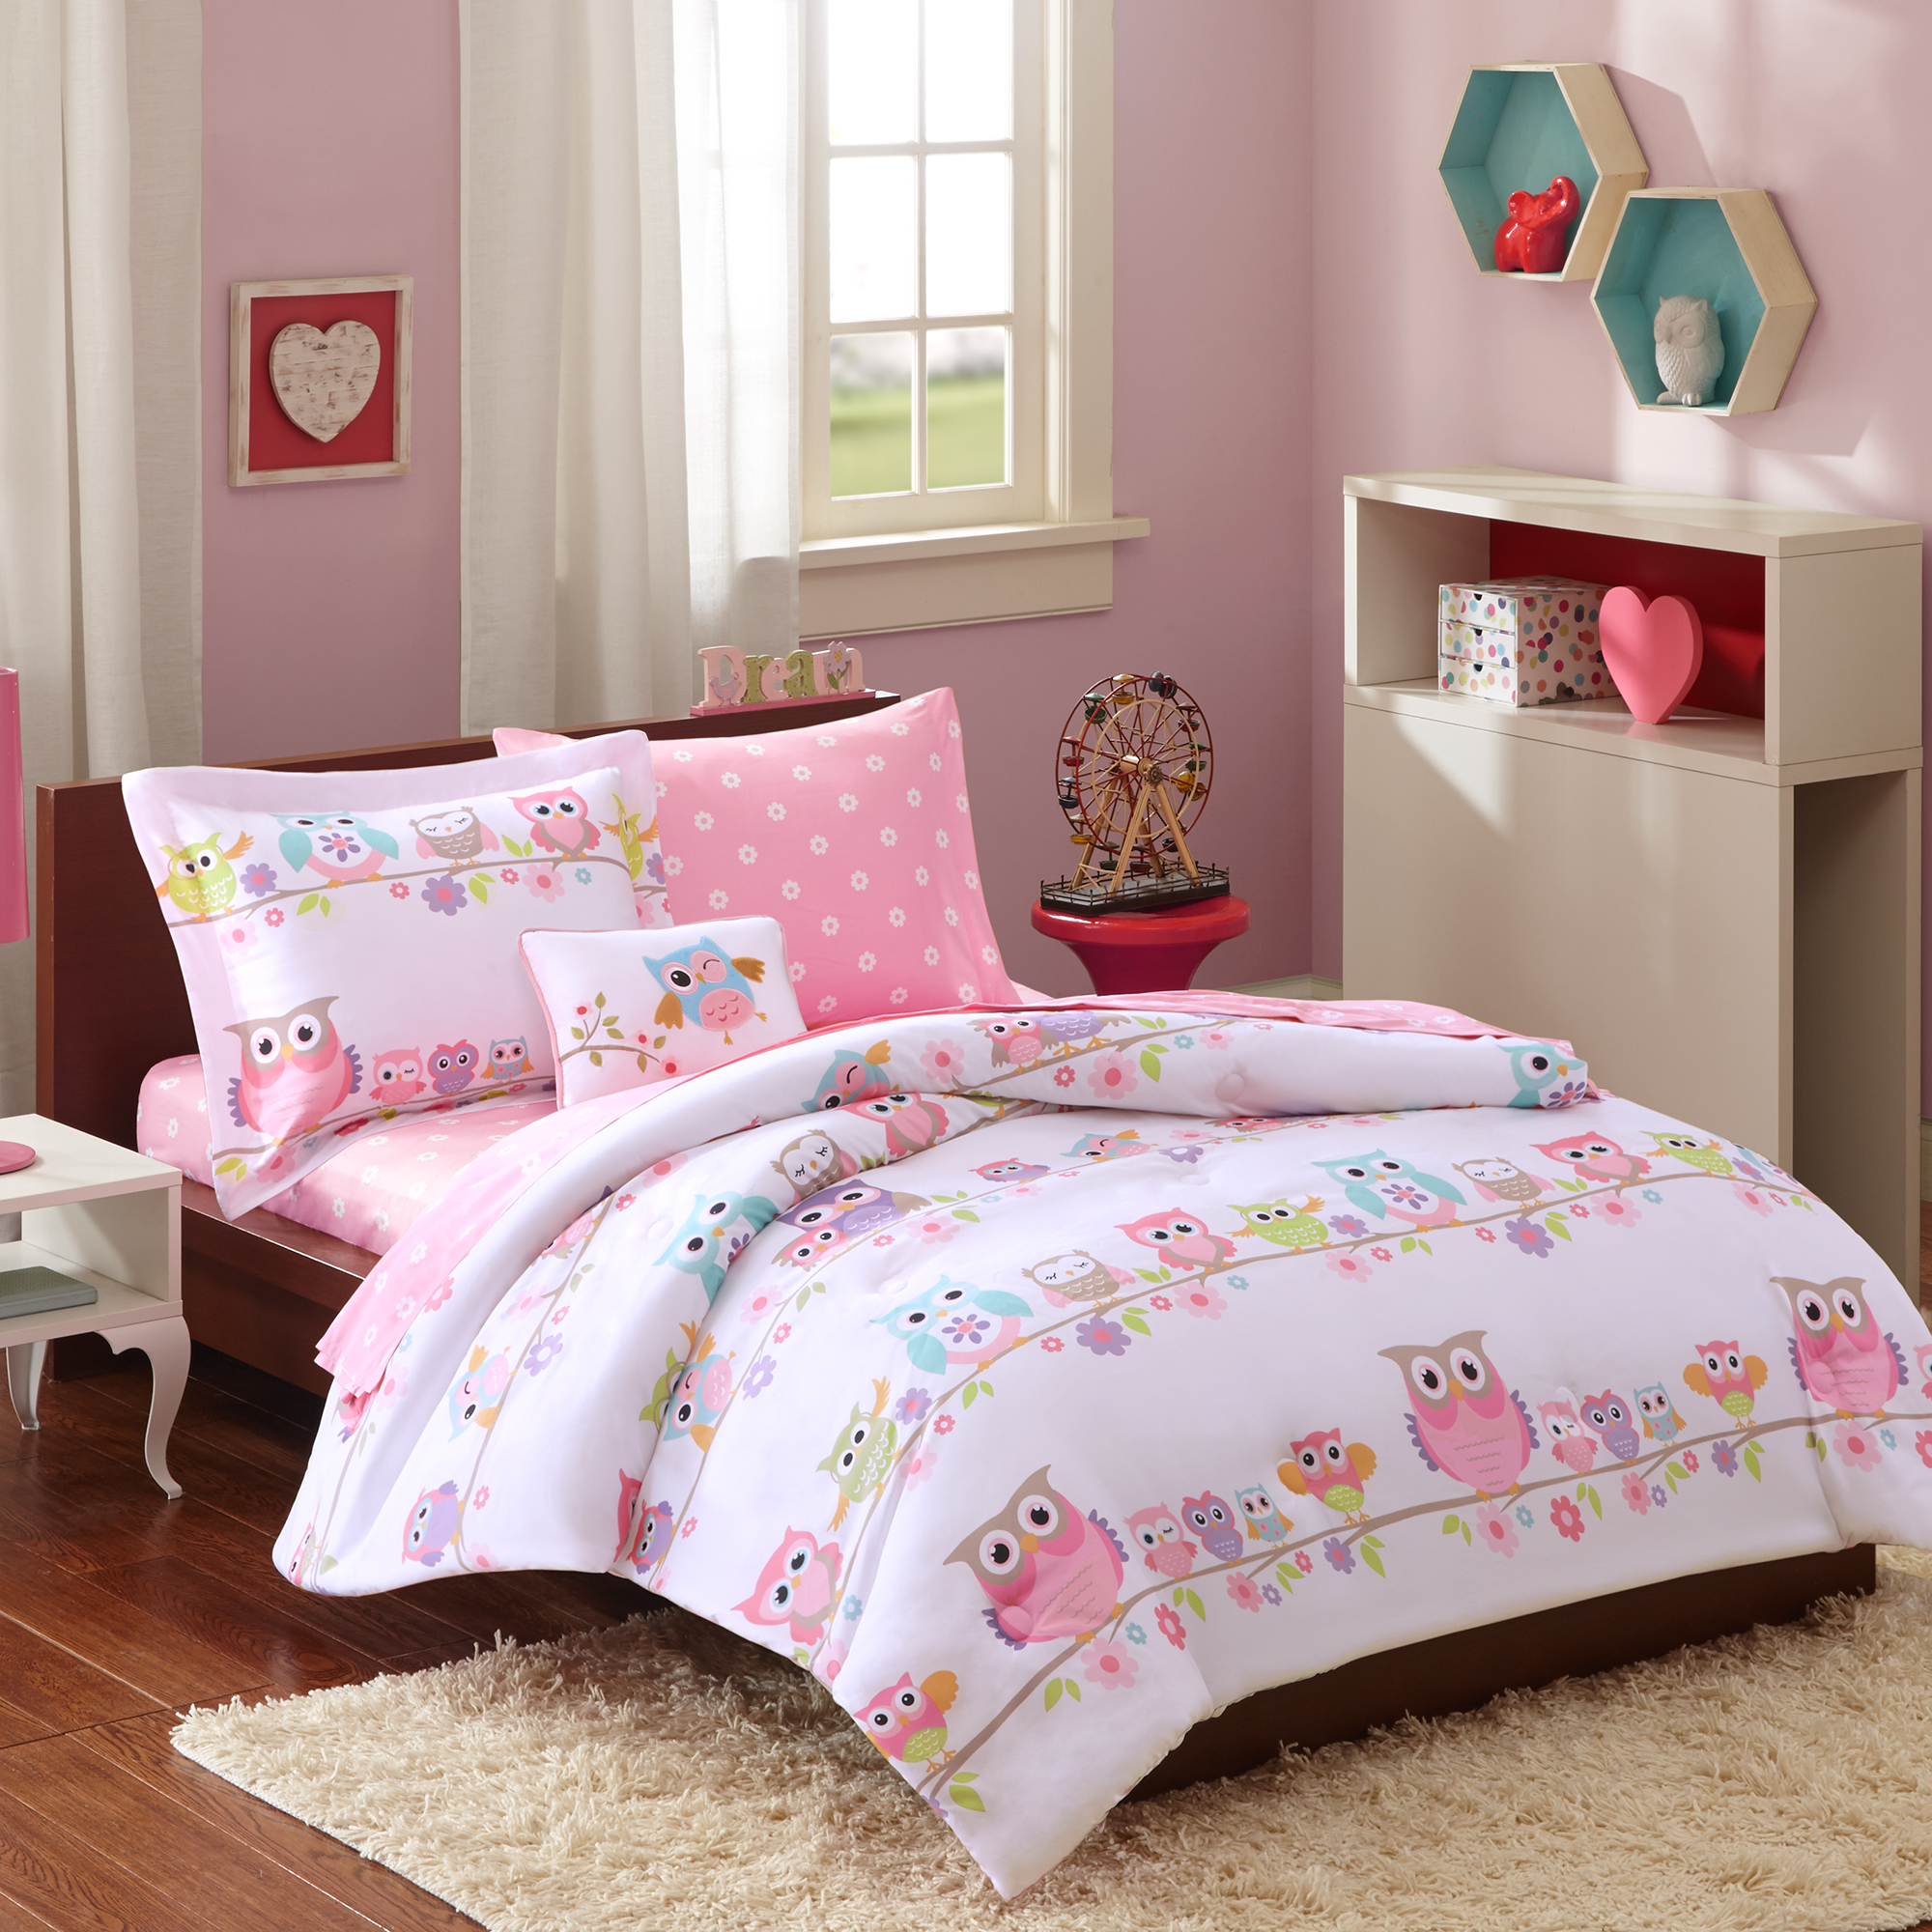 Home Essence Kids Striking Sara Complete Bed and Sheet Set